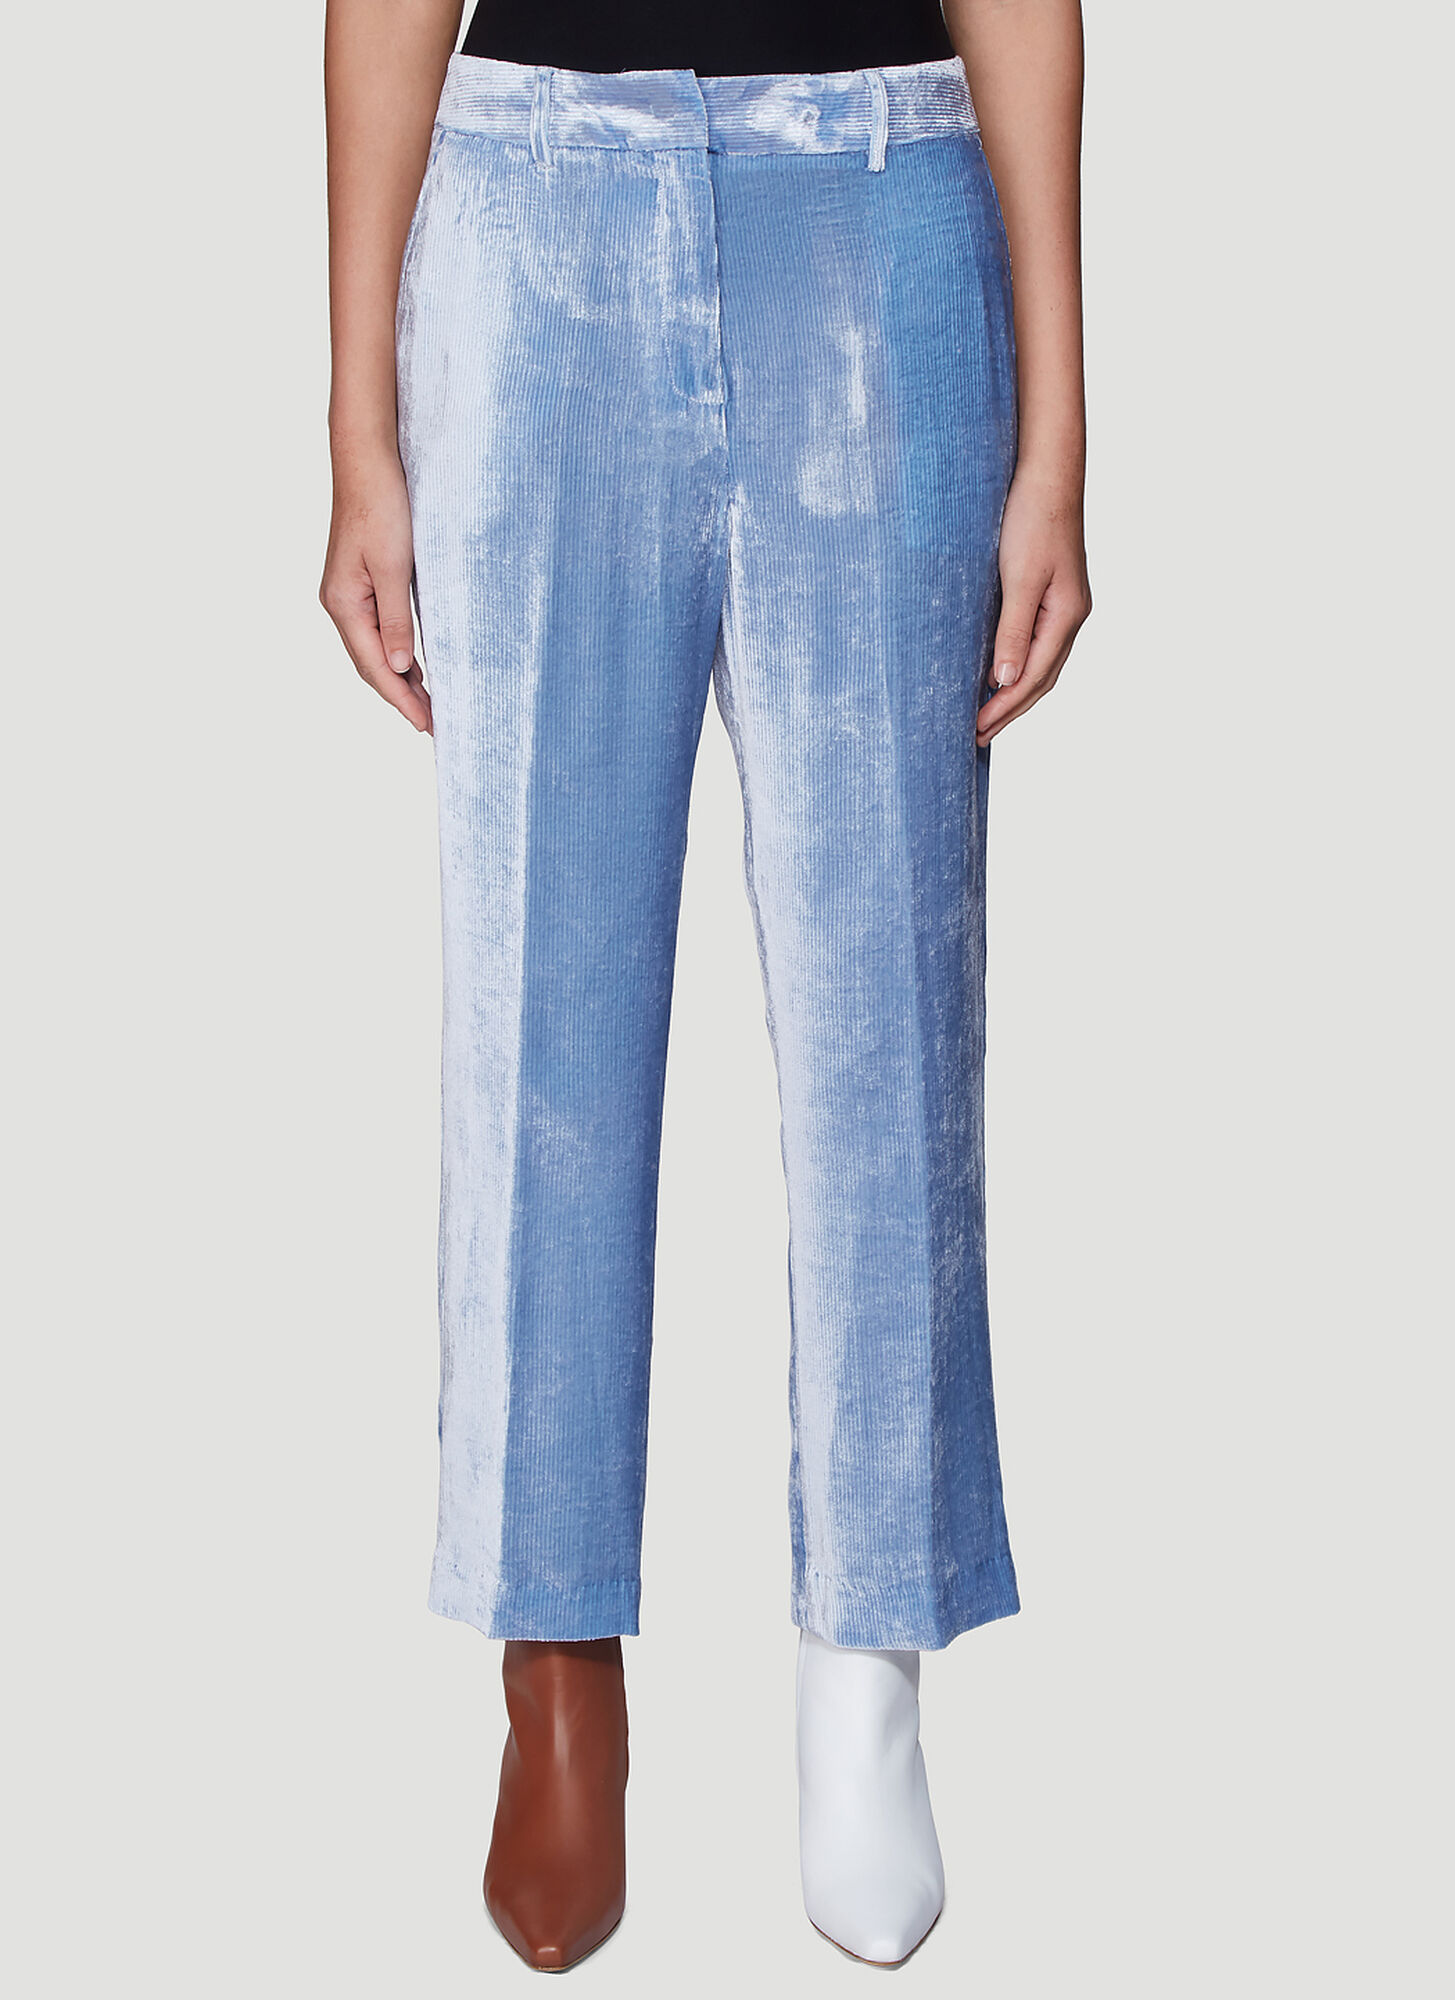 Photo of Sies Marjan Willa Fluid Corduroy Cropped Pants in Blue - Sies Marjan Pants